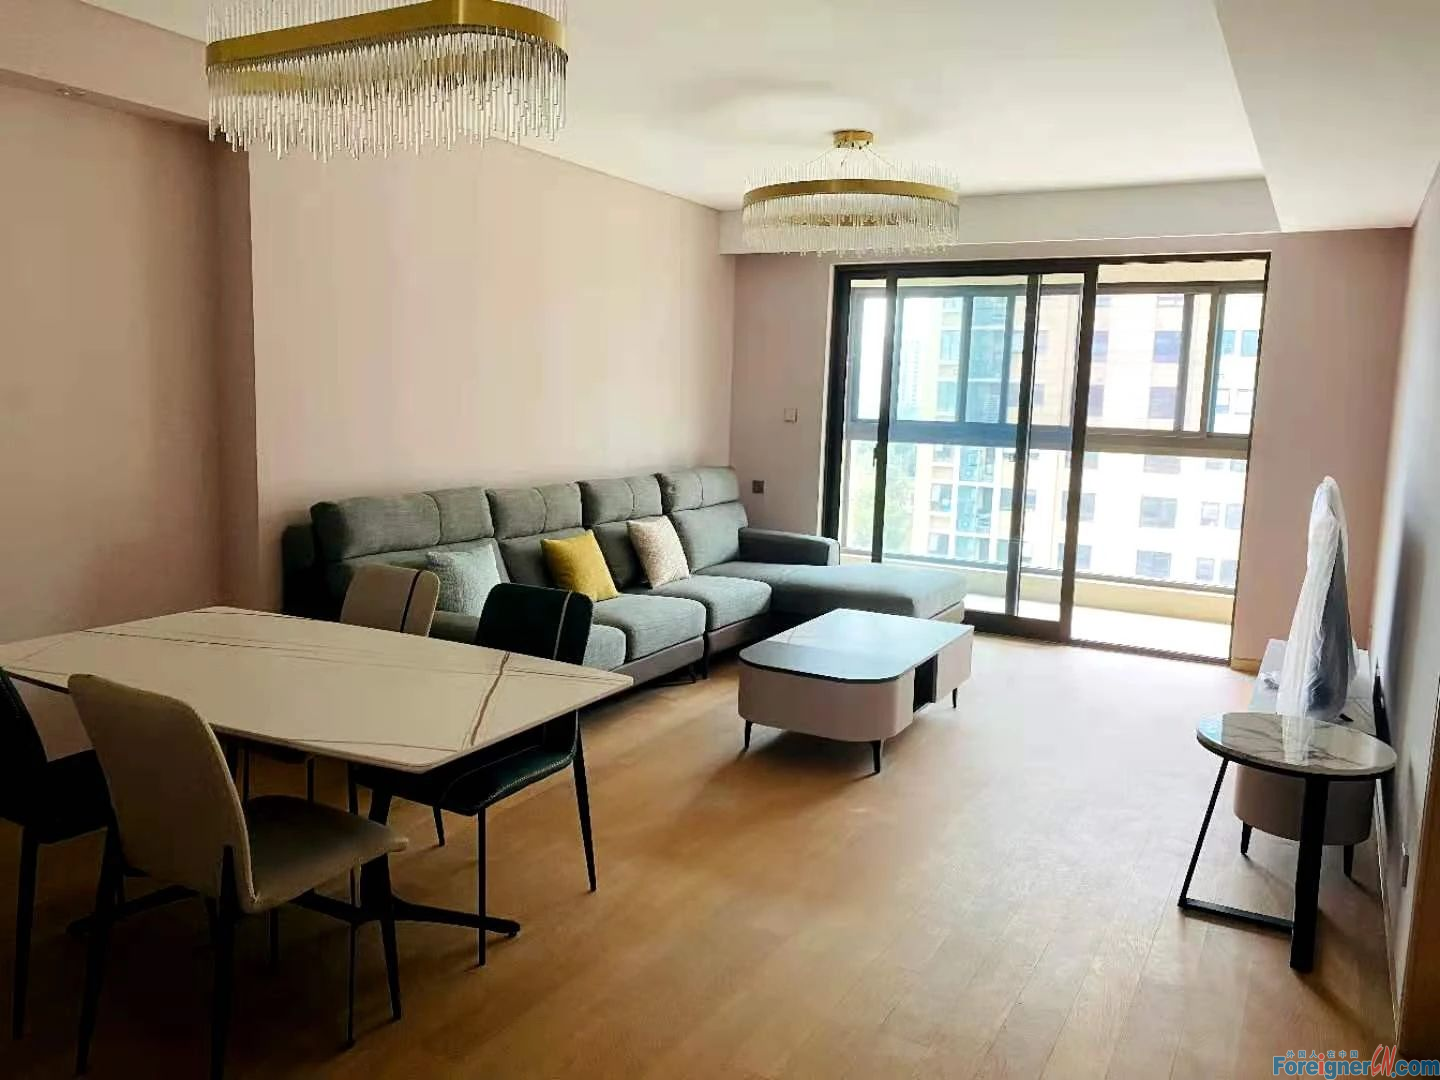 Search for an apartment in Suzhou-heated floor-air exchange system- fully furniture- central AC-near metro -first rent